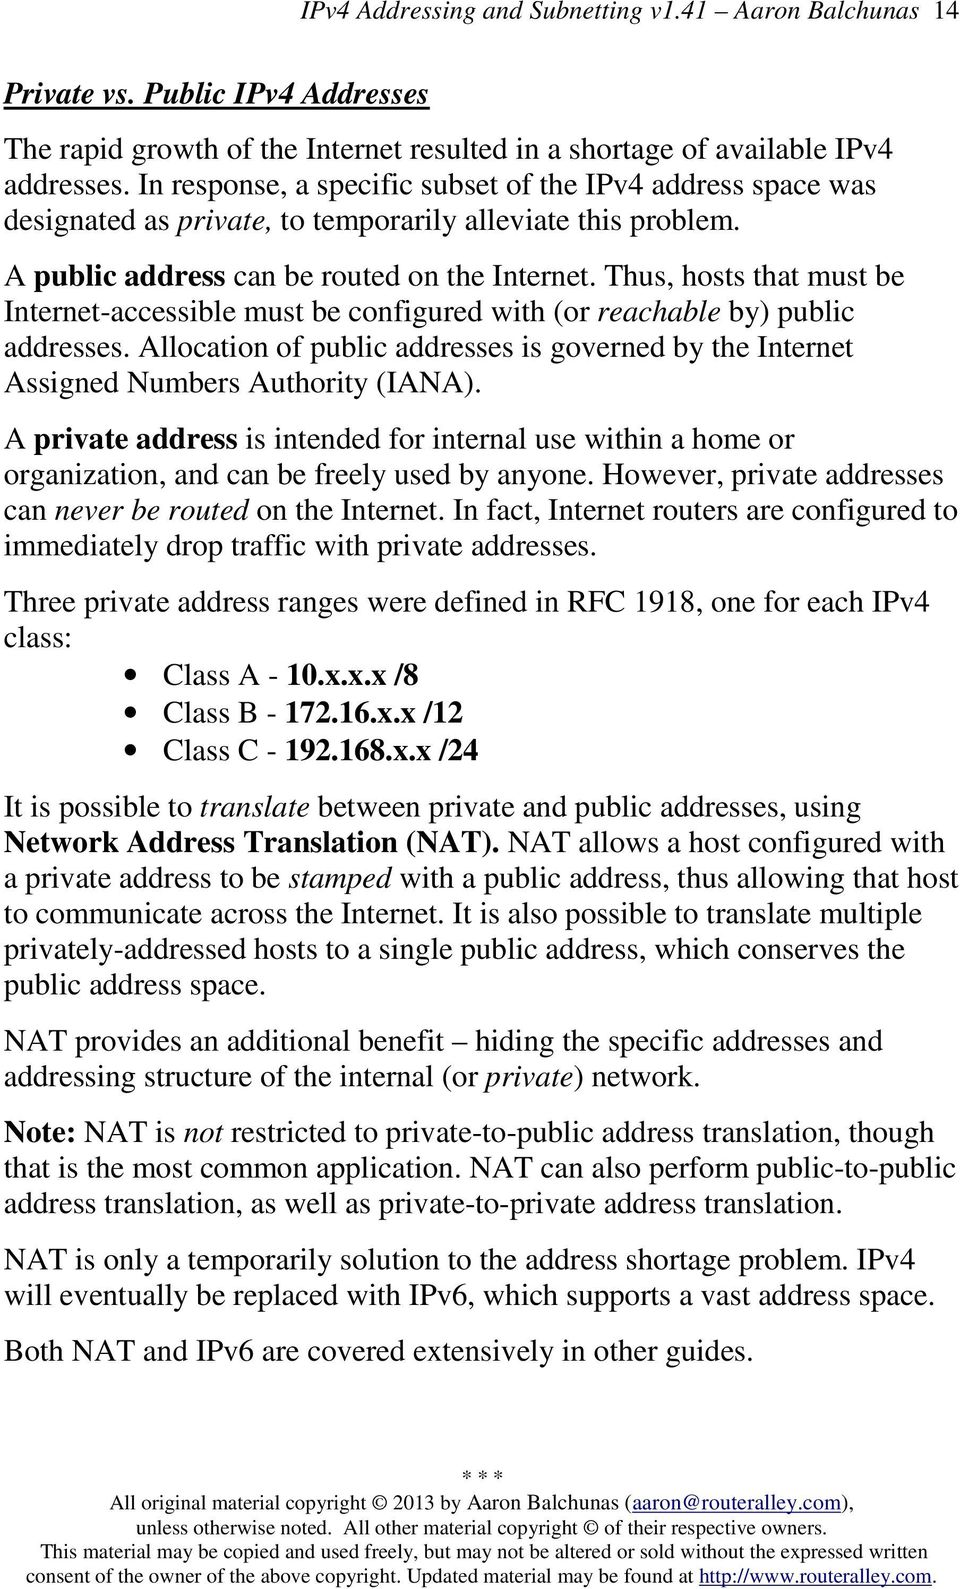 Thus, hosts that must be Internet-accessible must be configured with (or reachable by) public addresses. Allocation of public addresses is governed by the Internet Assigned Numbers Authority (IANA).